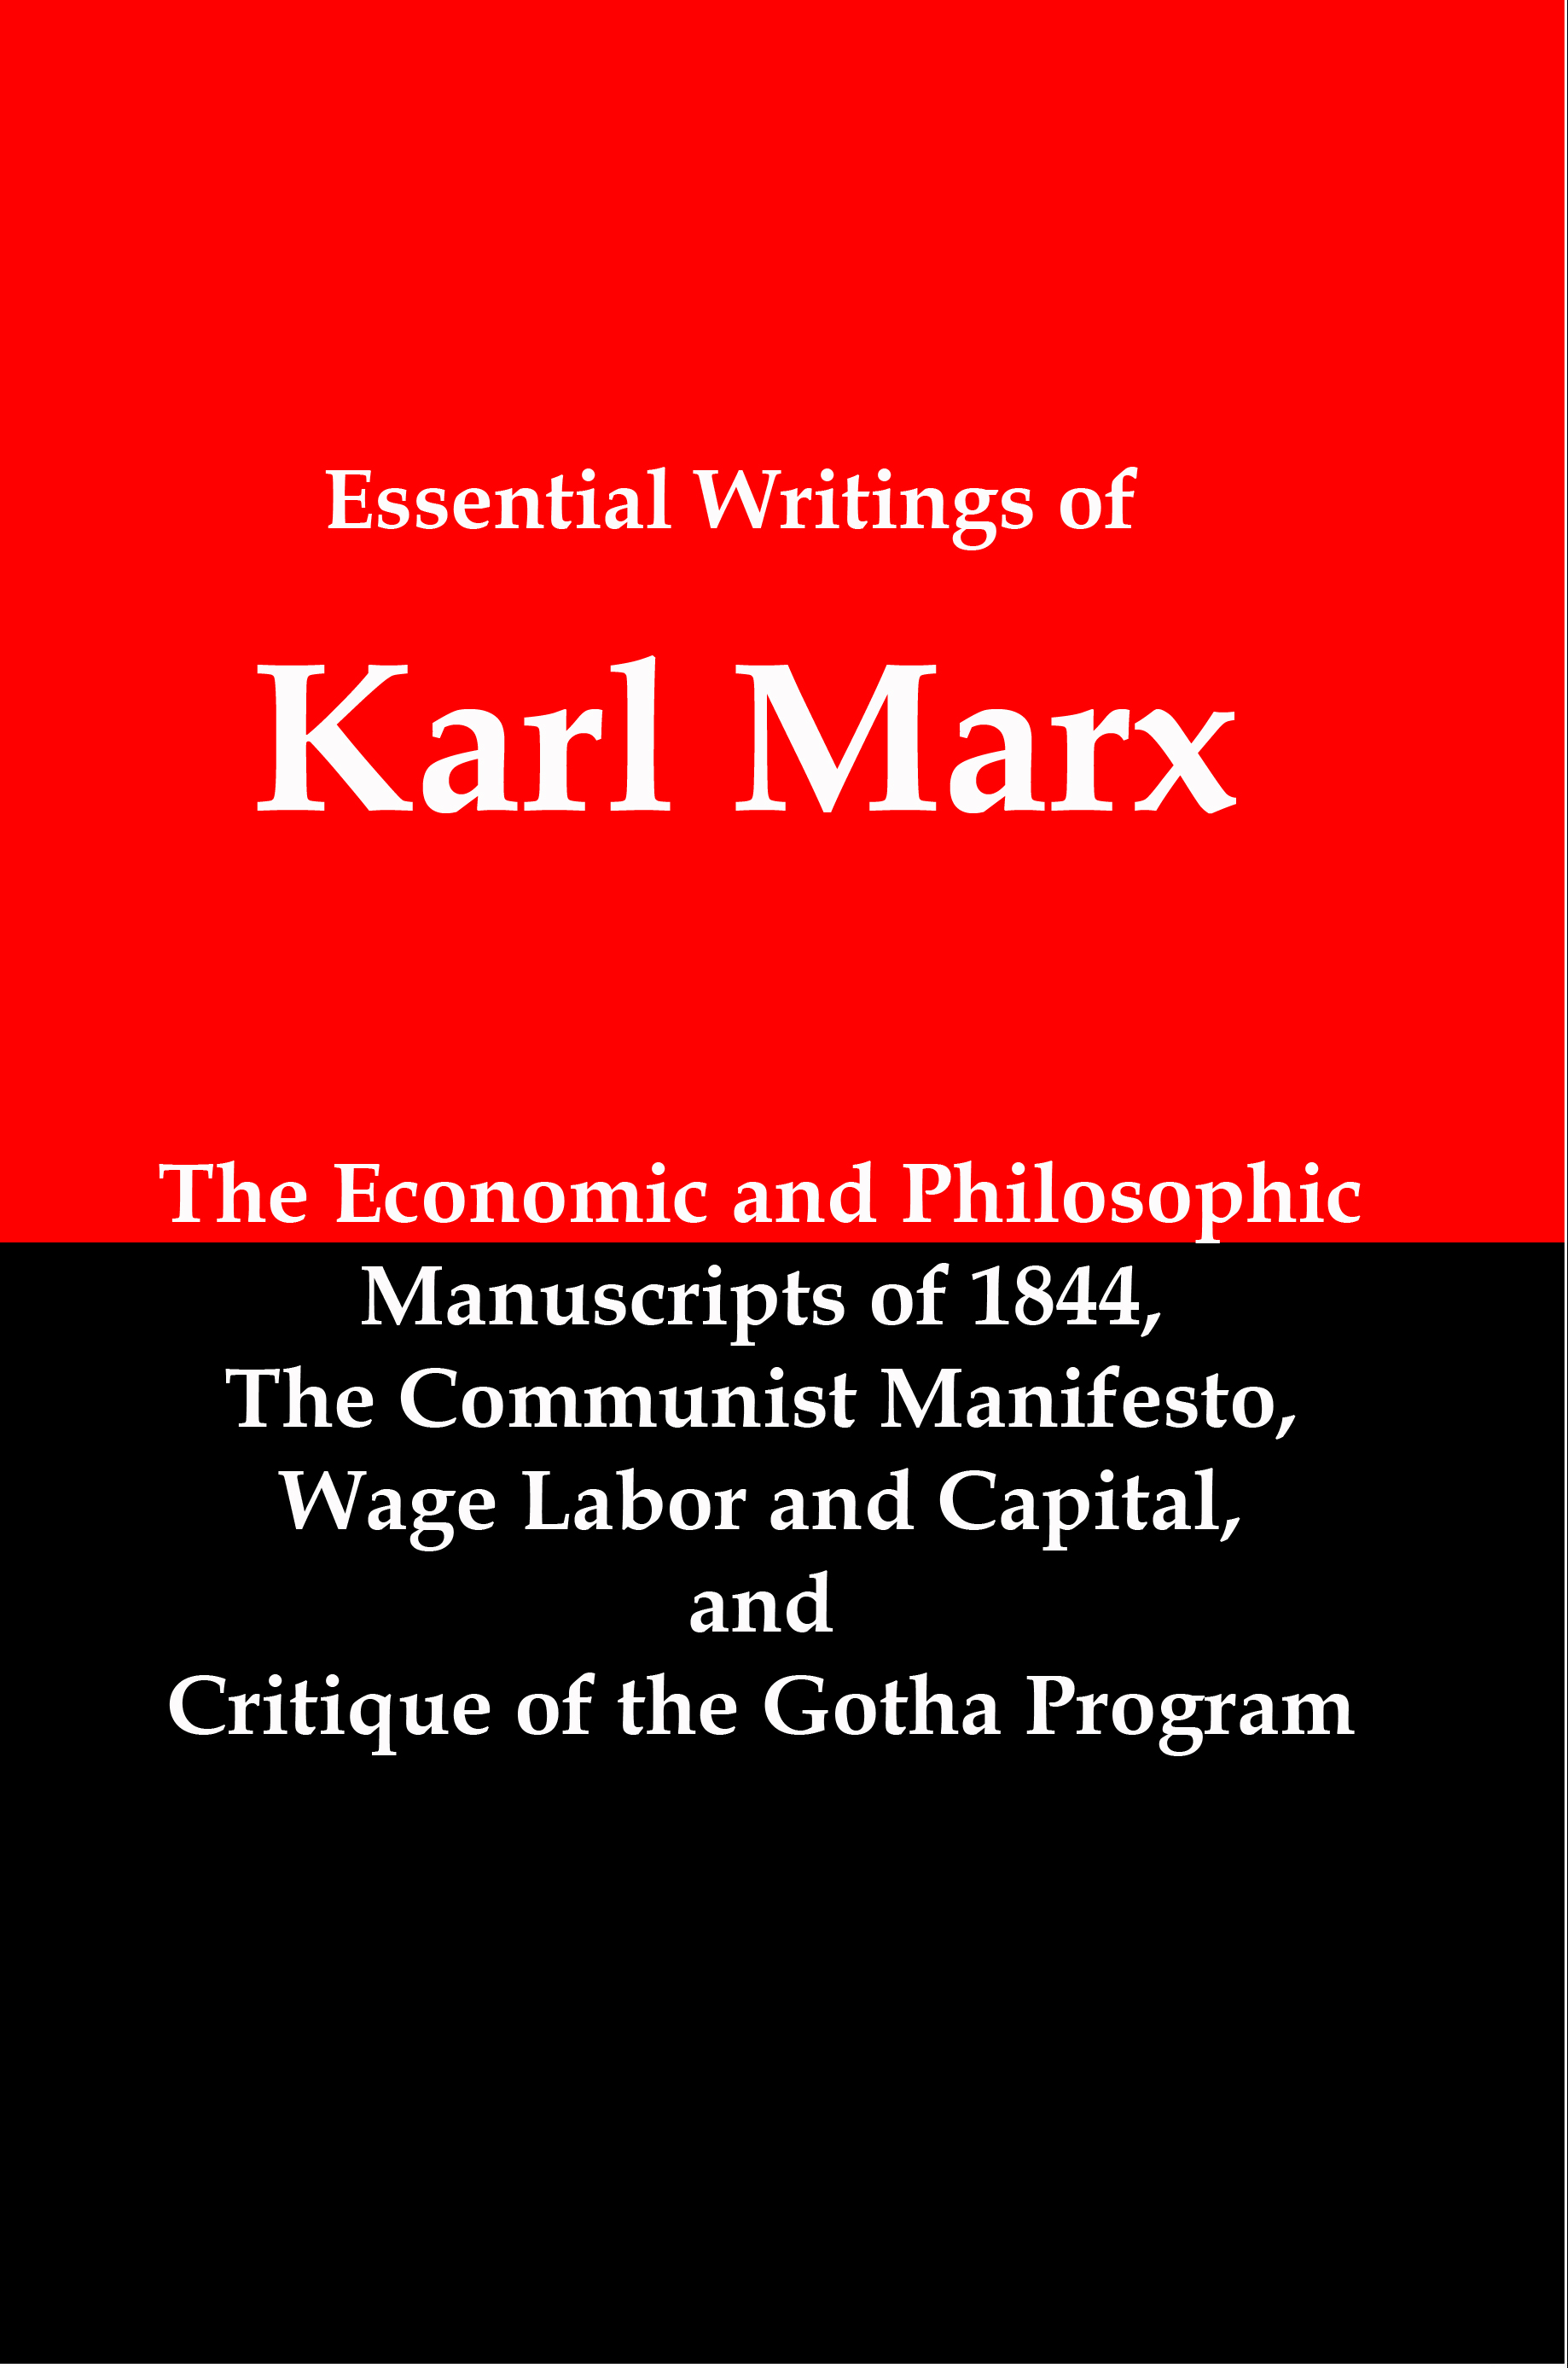 karl marxs modification on the philosophies and principles of hegel Karl marx materialist conception of history marx's theory, which he called historical materialism or the materialist conception of history is based on hegel's claim that history occurs through a dialectic, or clash, of opposing forces.